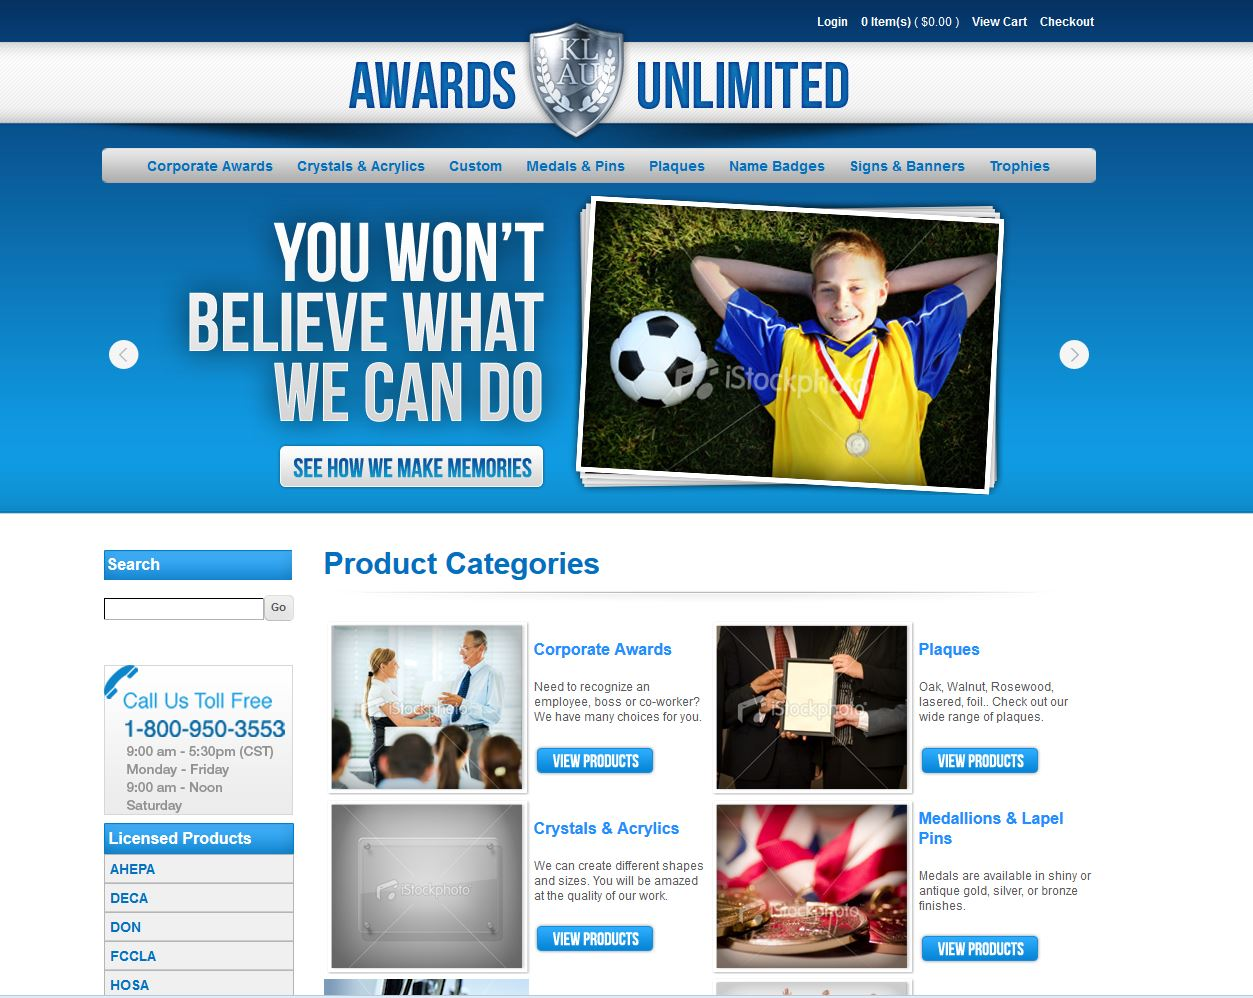 Awards Unlimited Site Launch